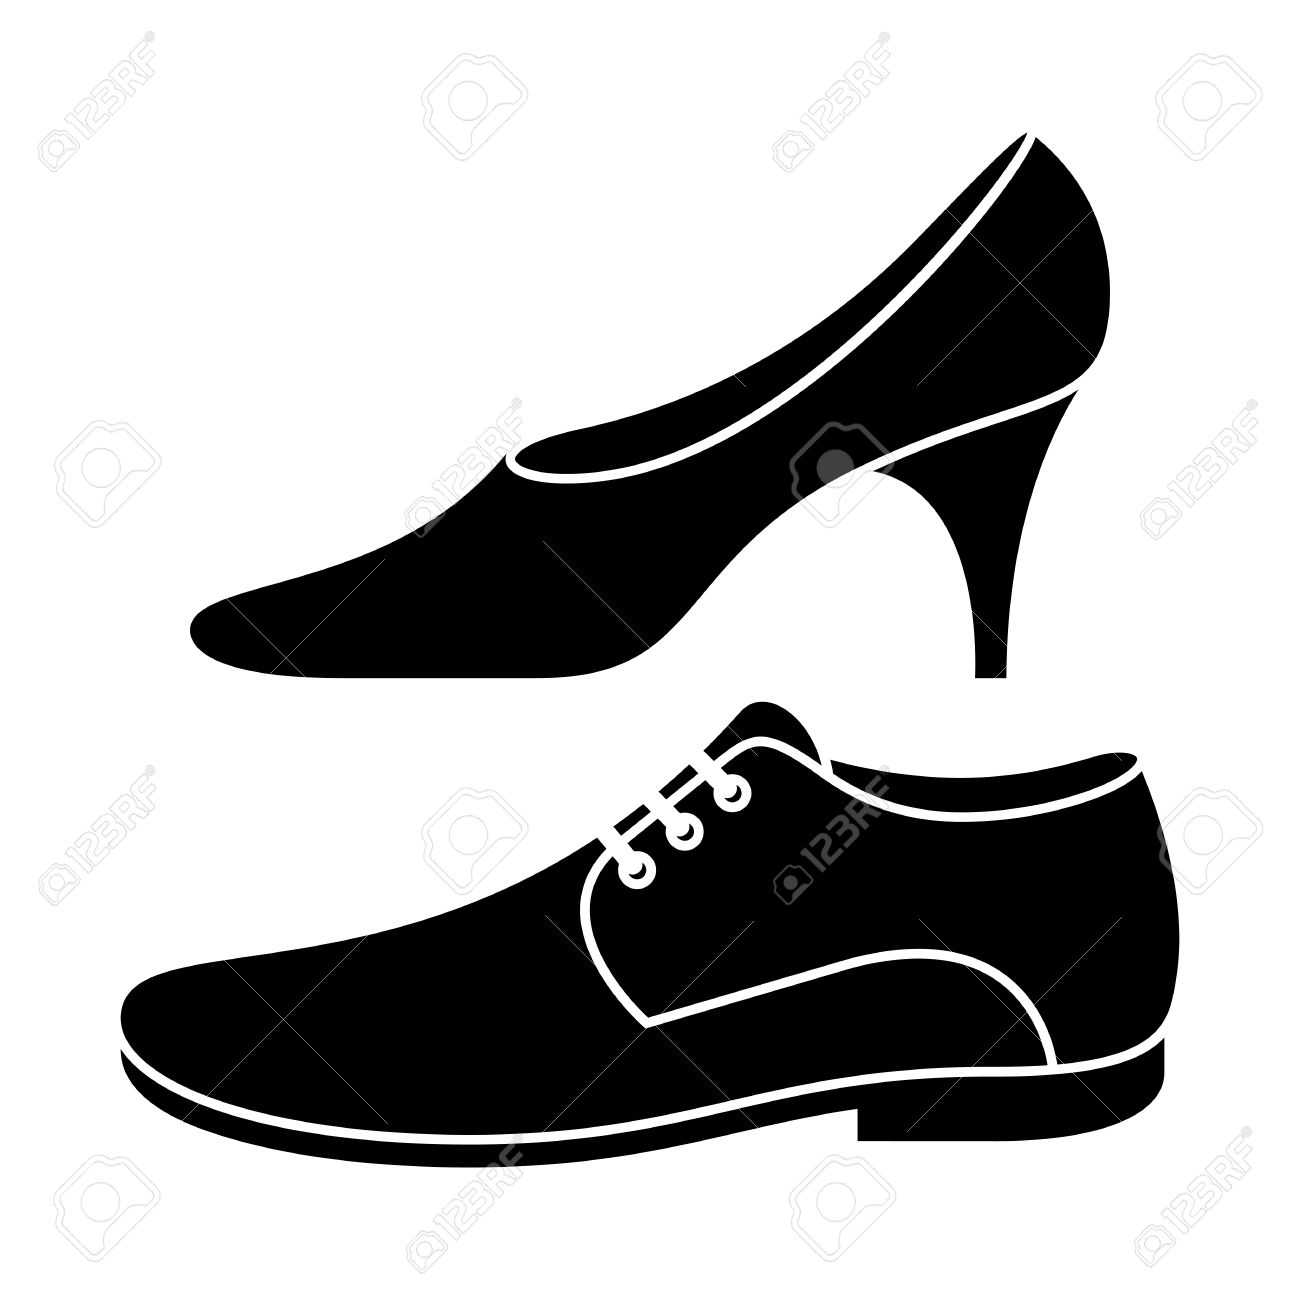 Mens shoes clipart black and white.